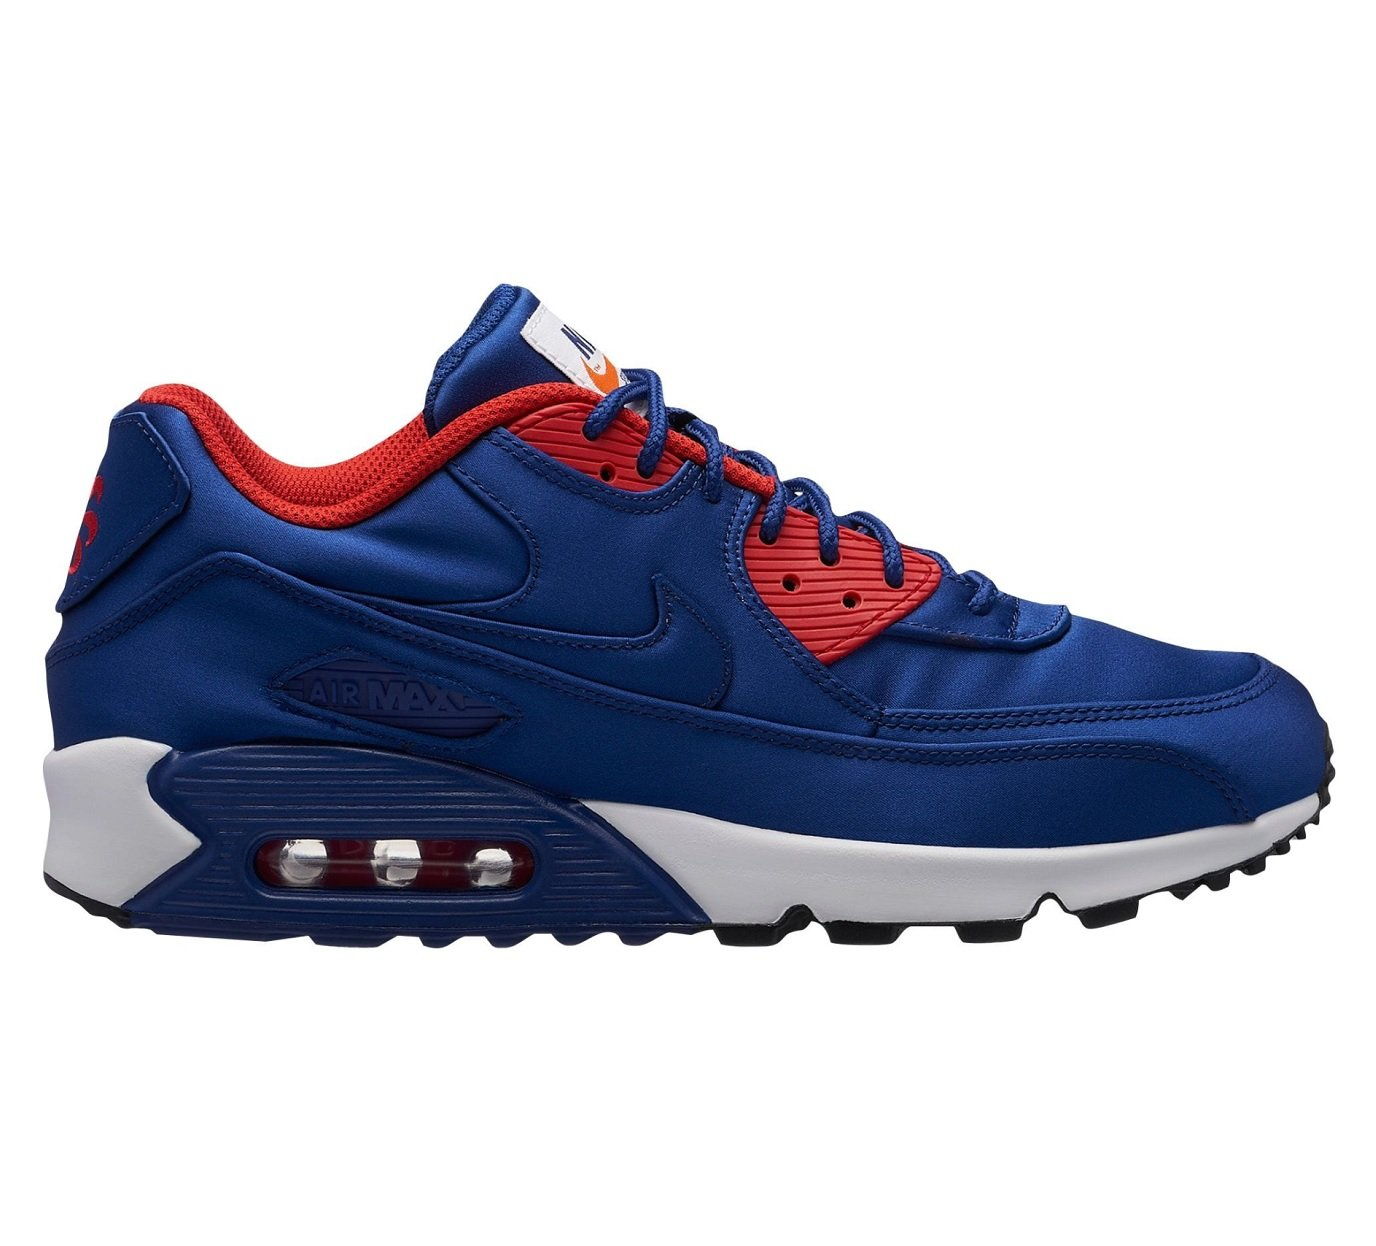 NIKE Air Max 90 Se Mens B07CYF6VQ2 9.5 D(M) US|Deep Royal Blue